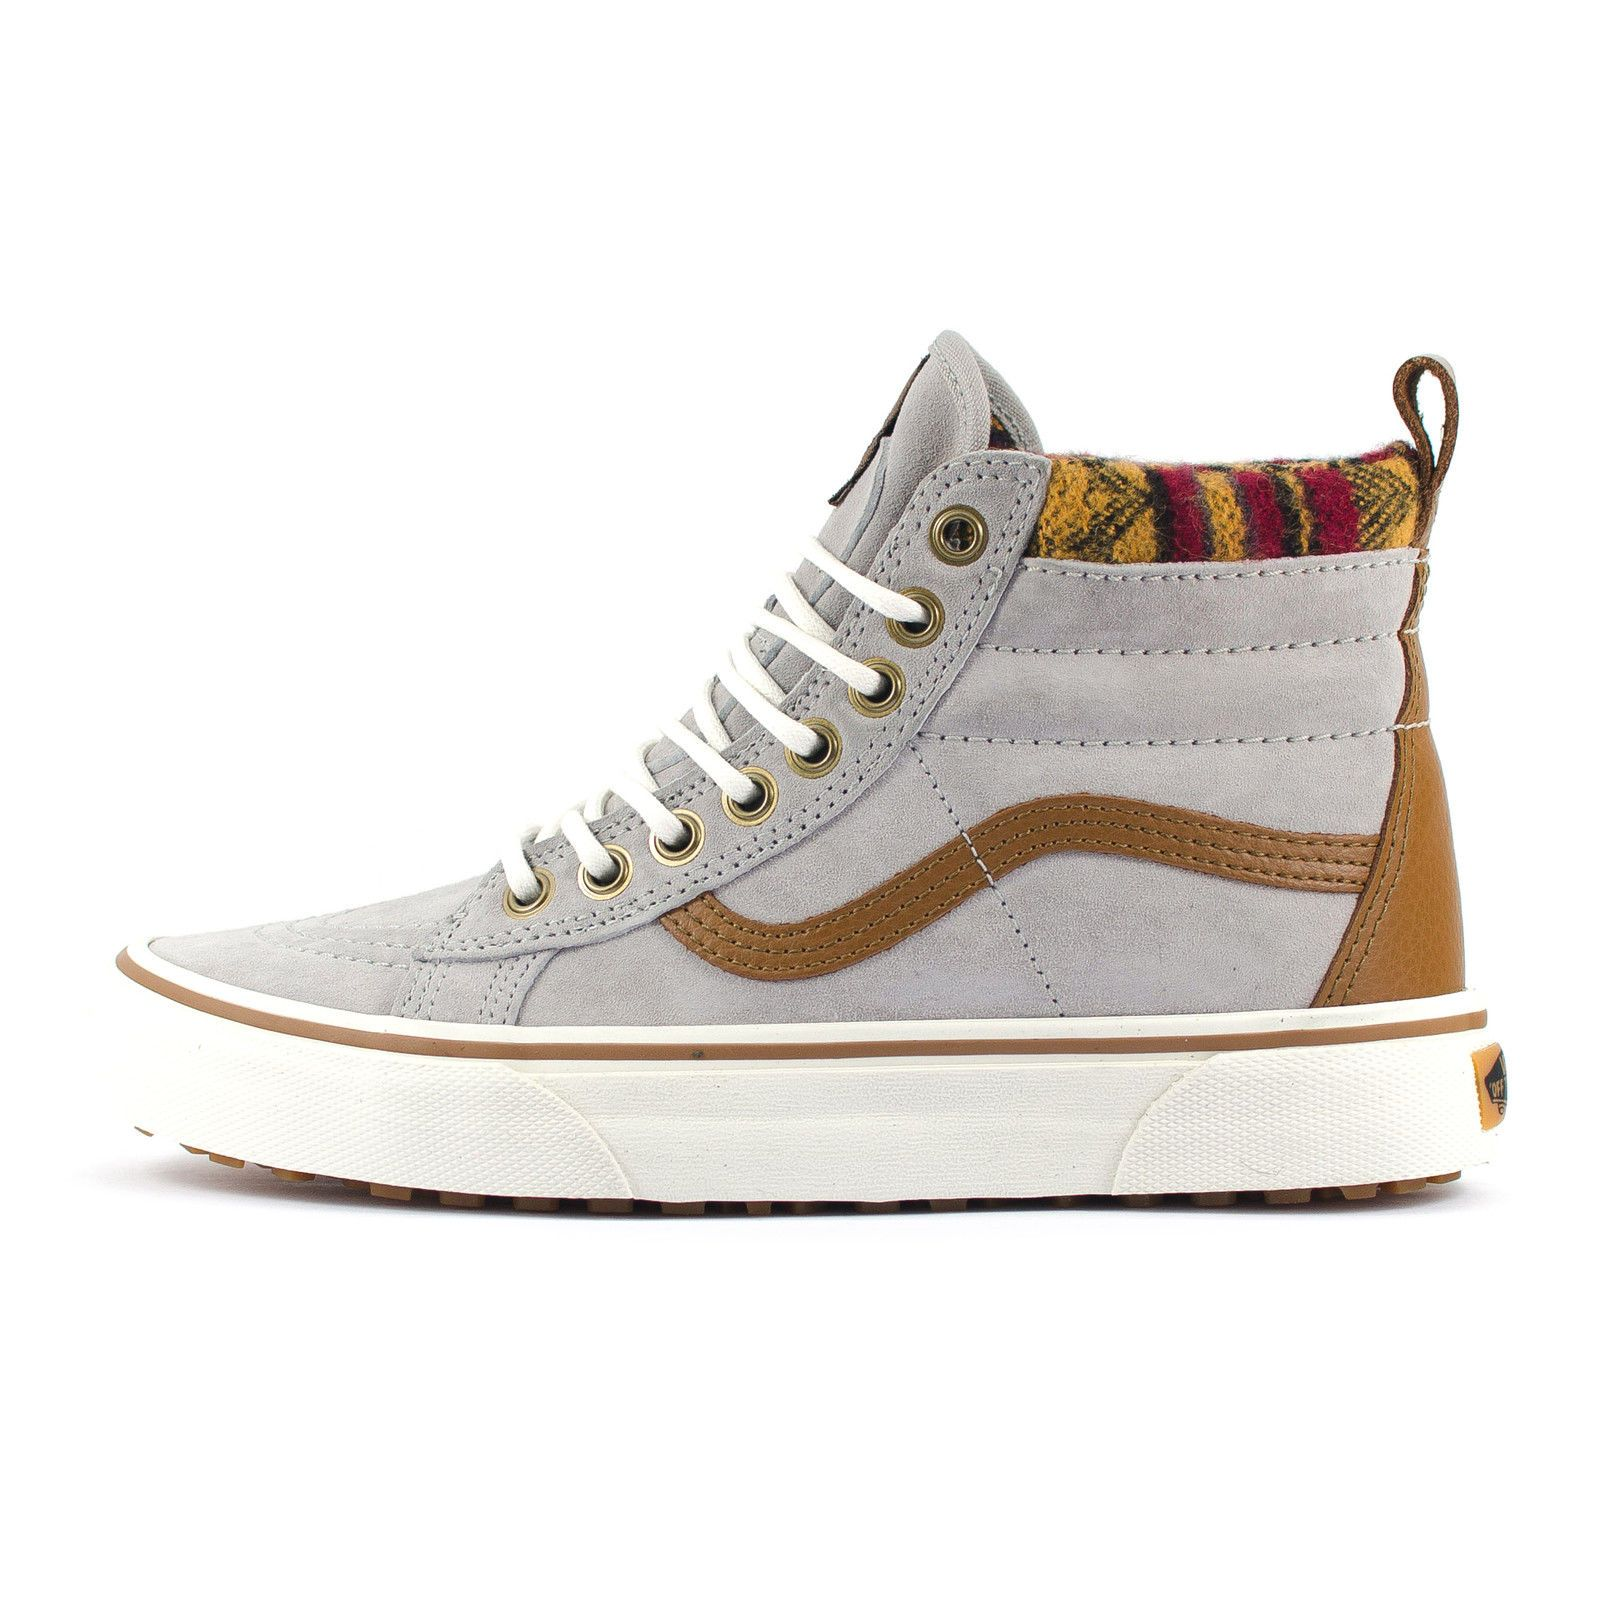 72f3267102 Womens Vans SK8 Hi Top MTE Scotchguard Knit Geo Grey Tan High Top Skate  Trainers